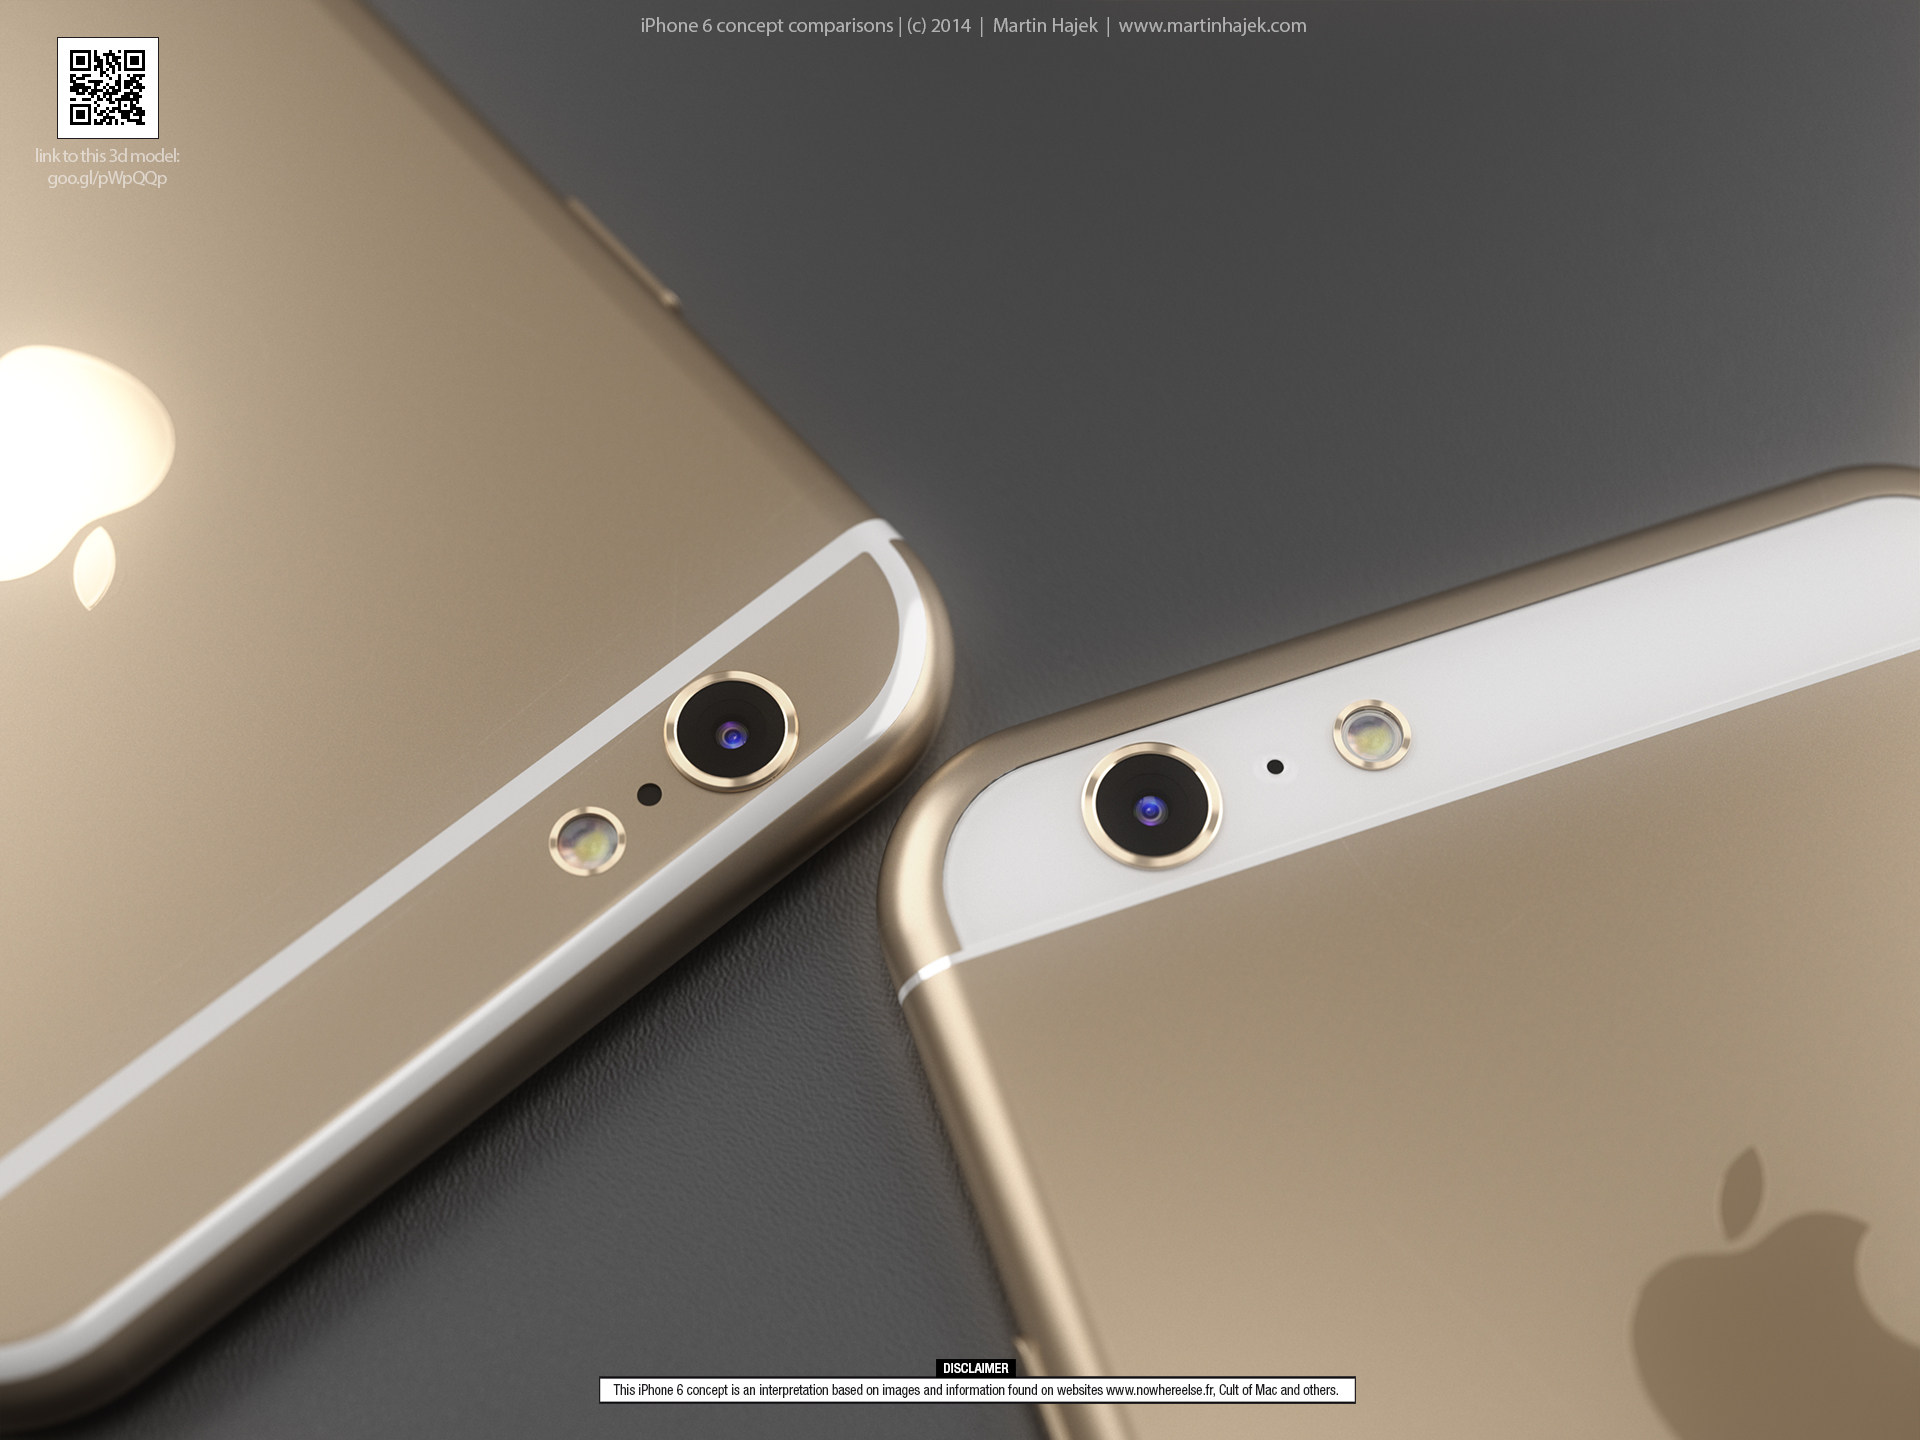 iPhone 6 (Martin Hajek 010)